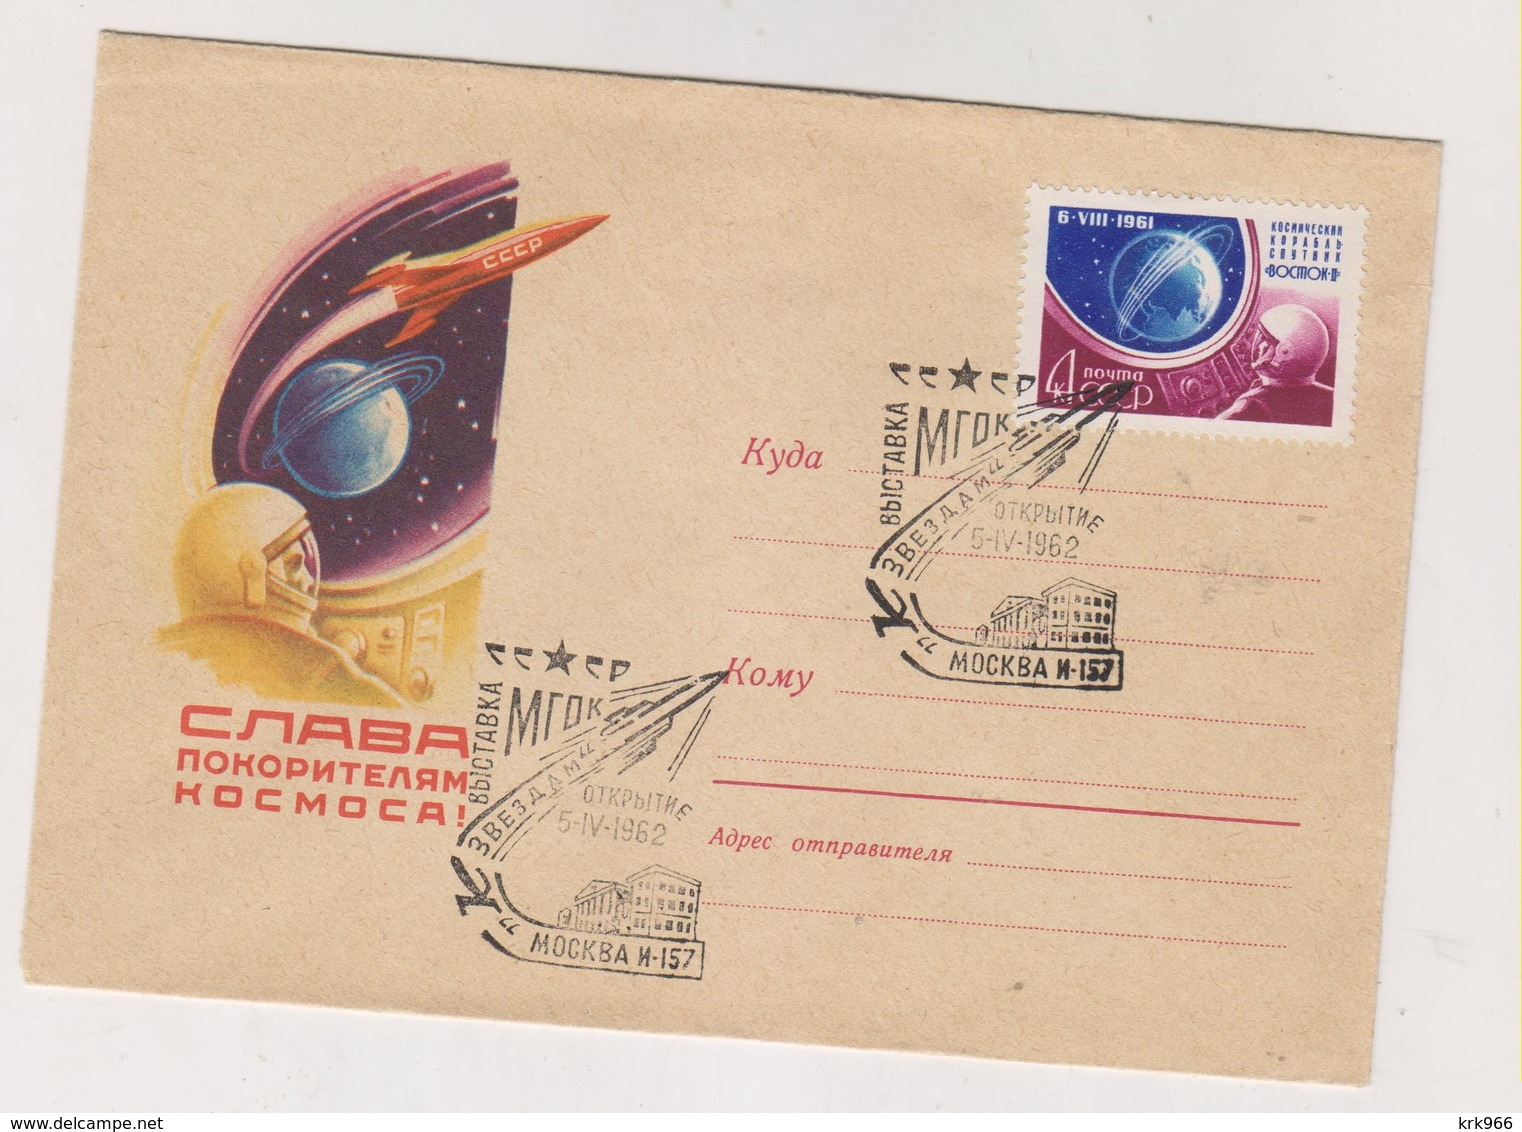 RUSSIA 1962 Nice Cover Space - Covers & Documents